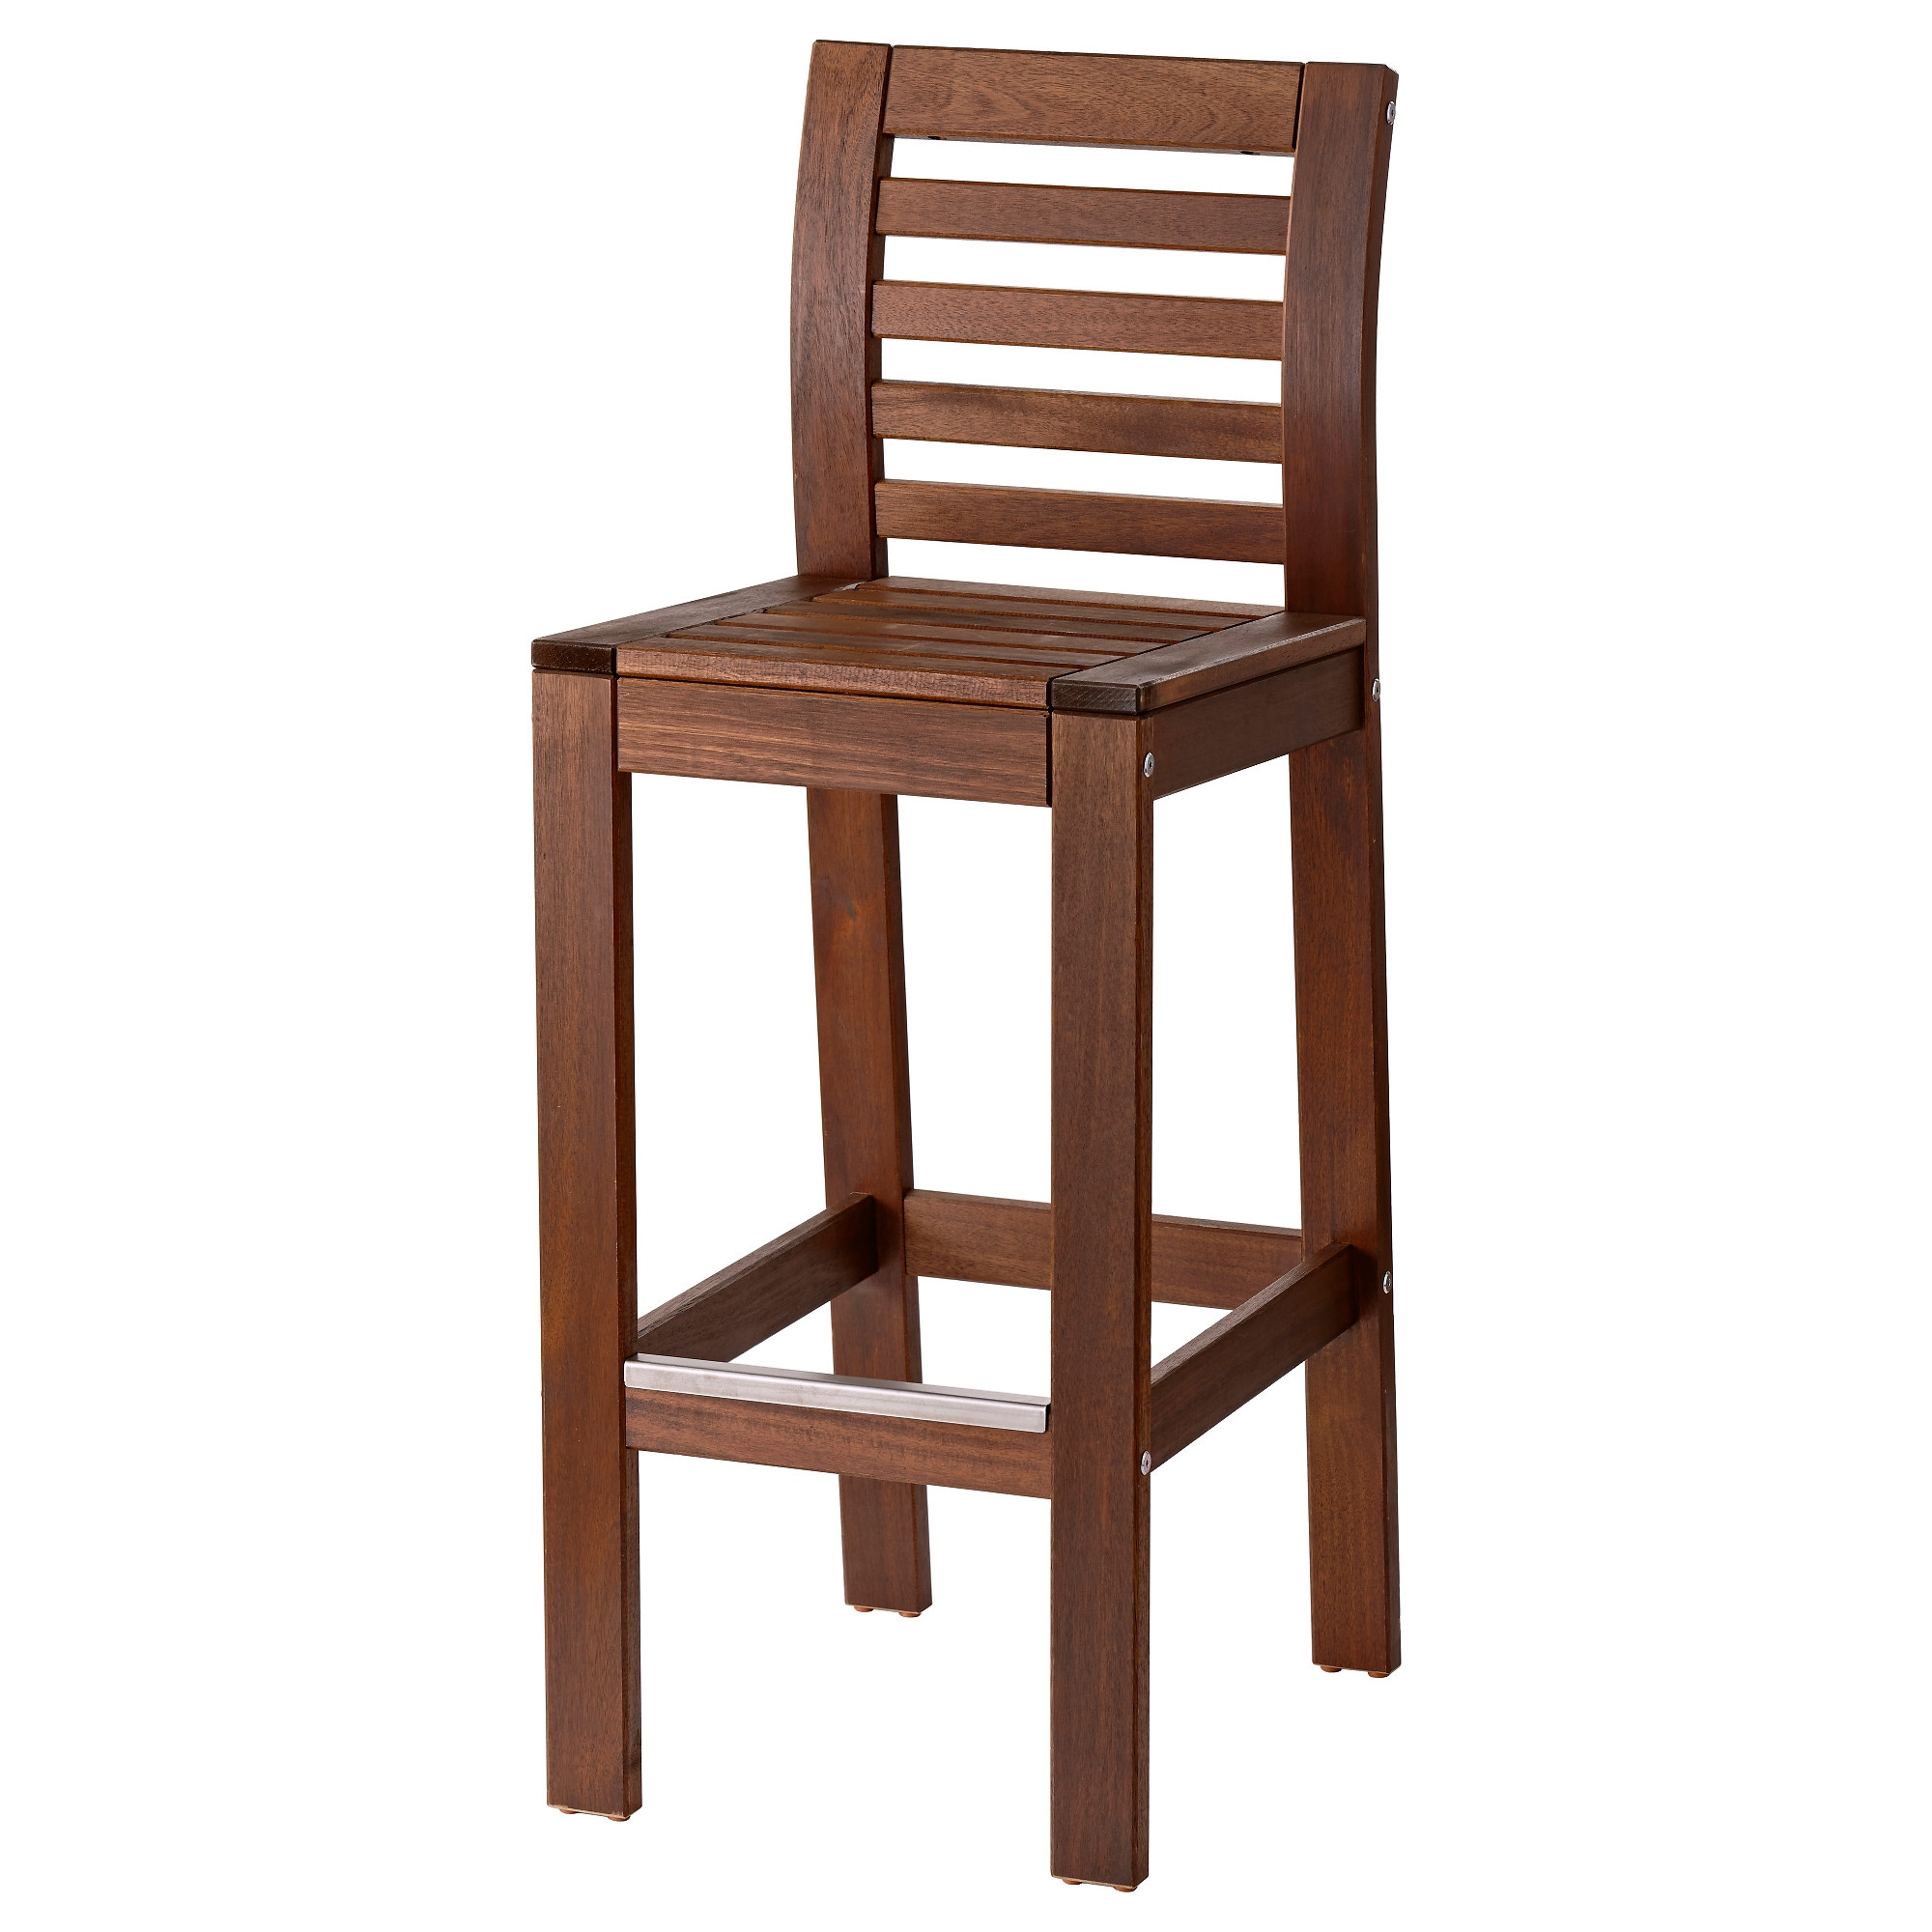 ÄPPLARÖ Bar Stool With Backrest, Outdoor, Brown Stained Width: 15 3/4